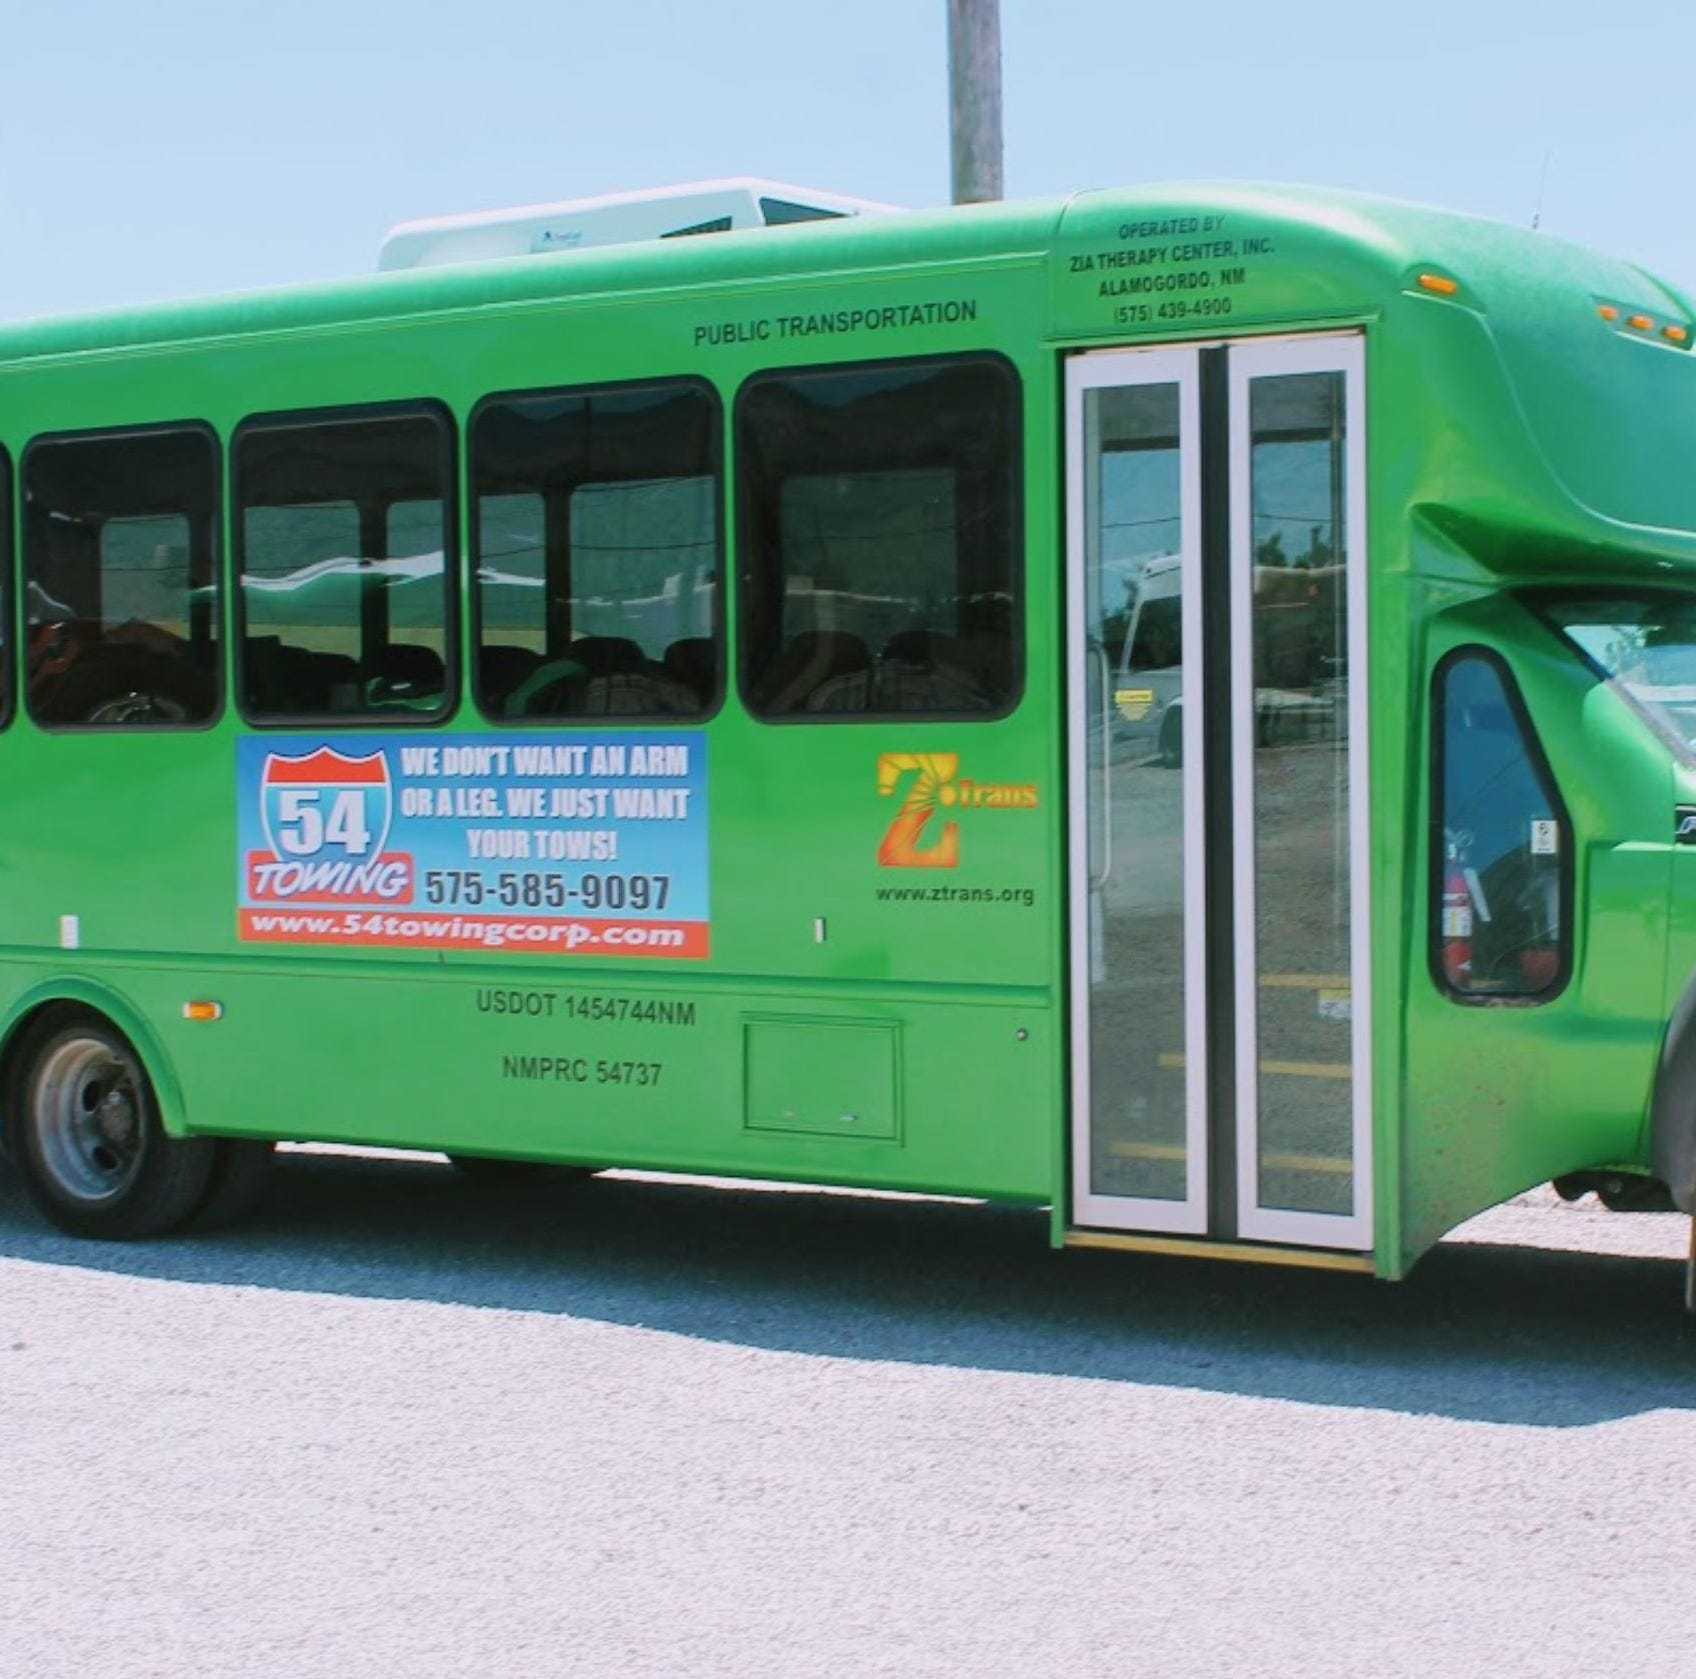 Bus drivers needed: Zia Tran system will train drivers